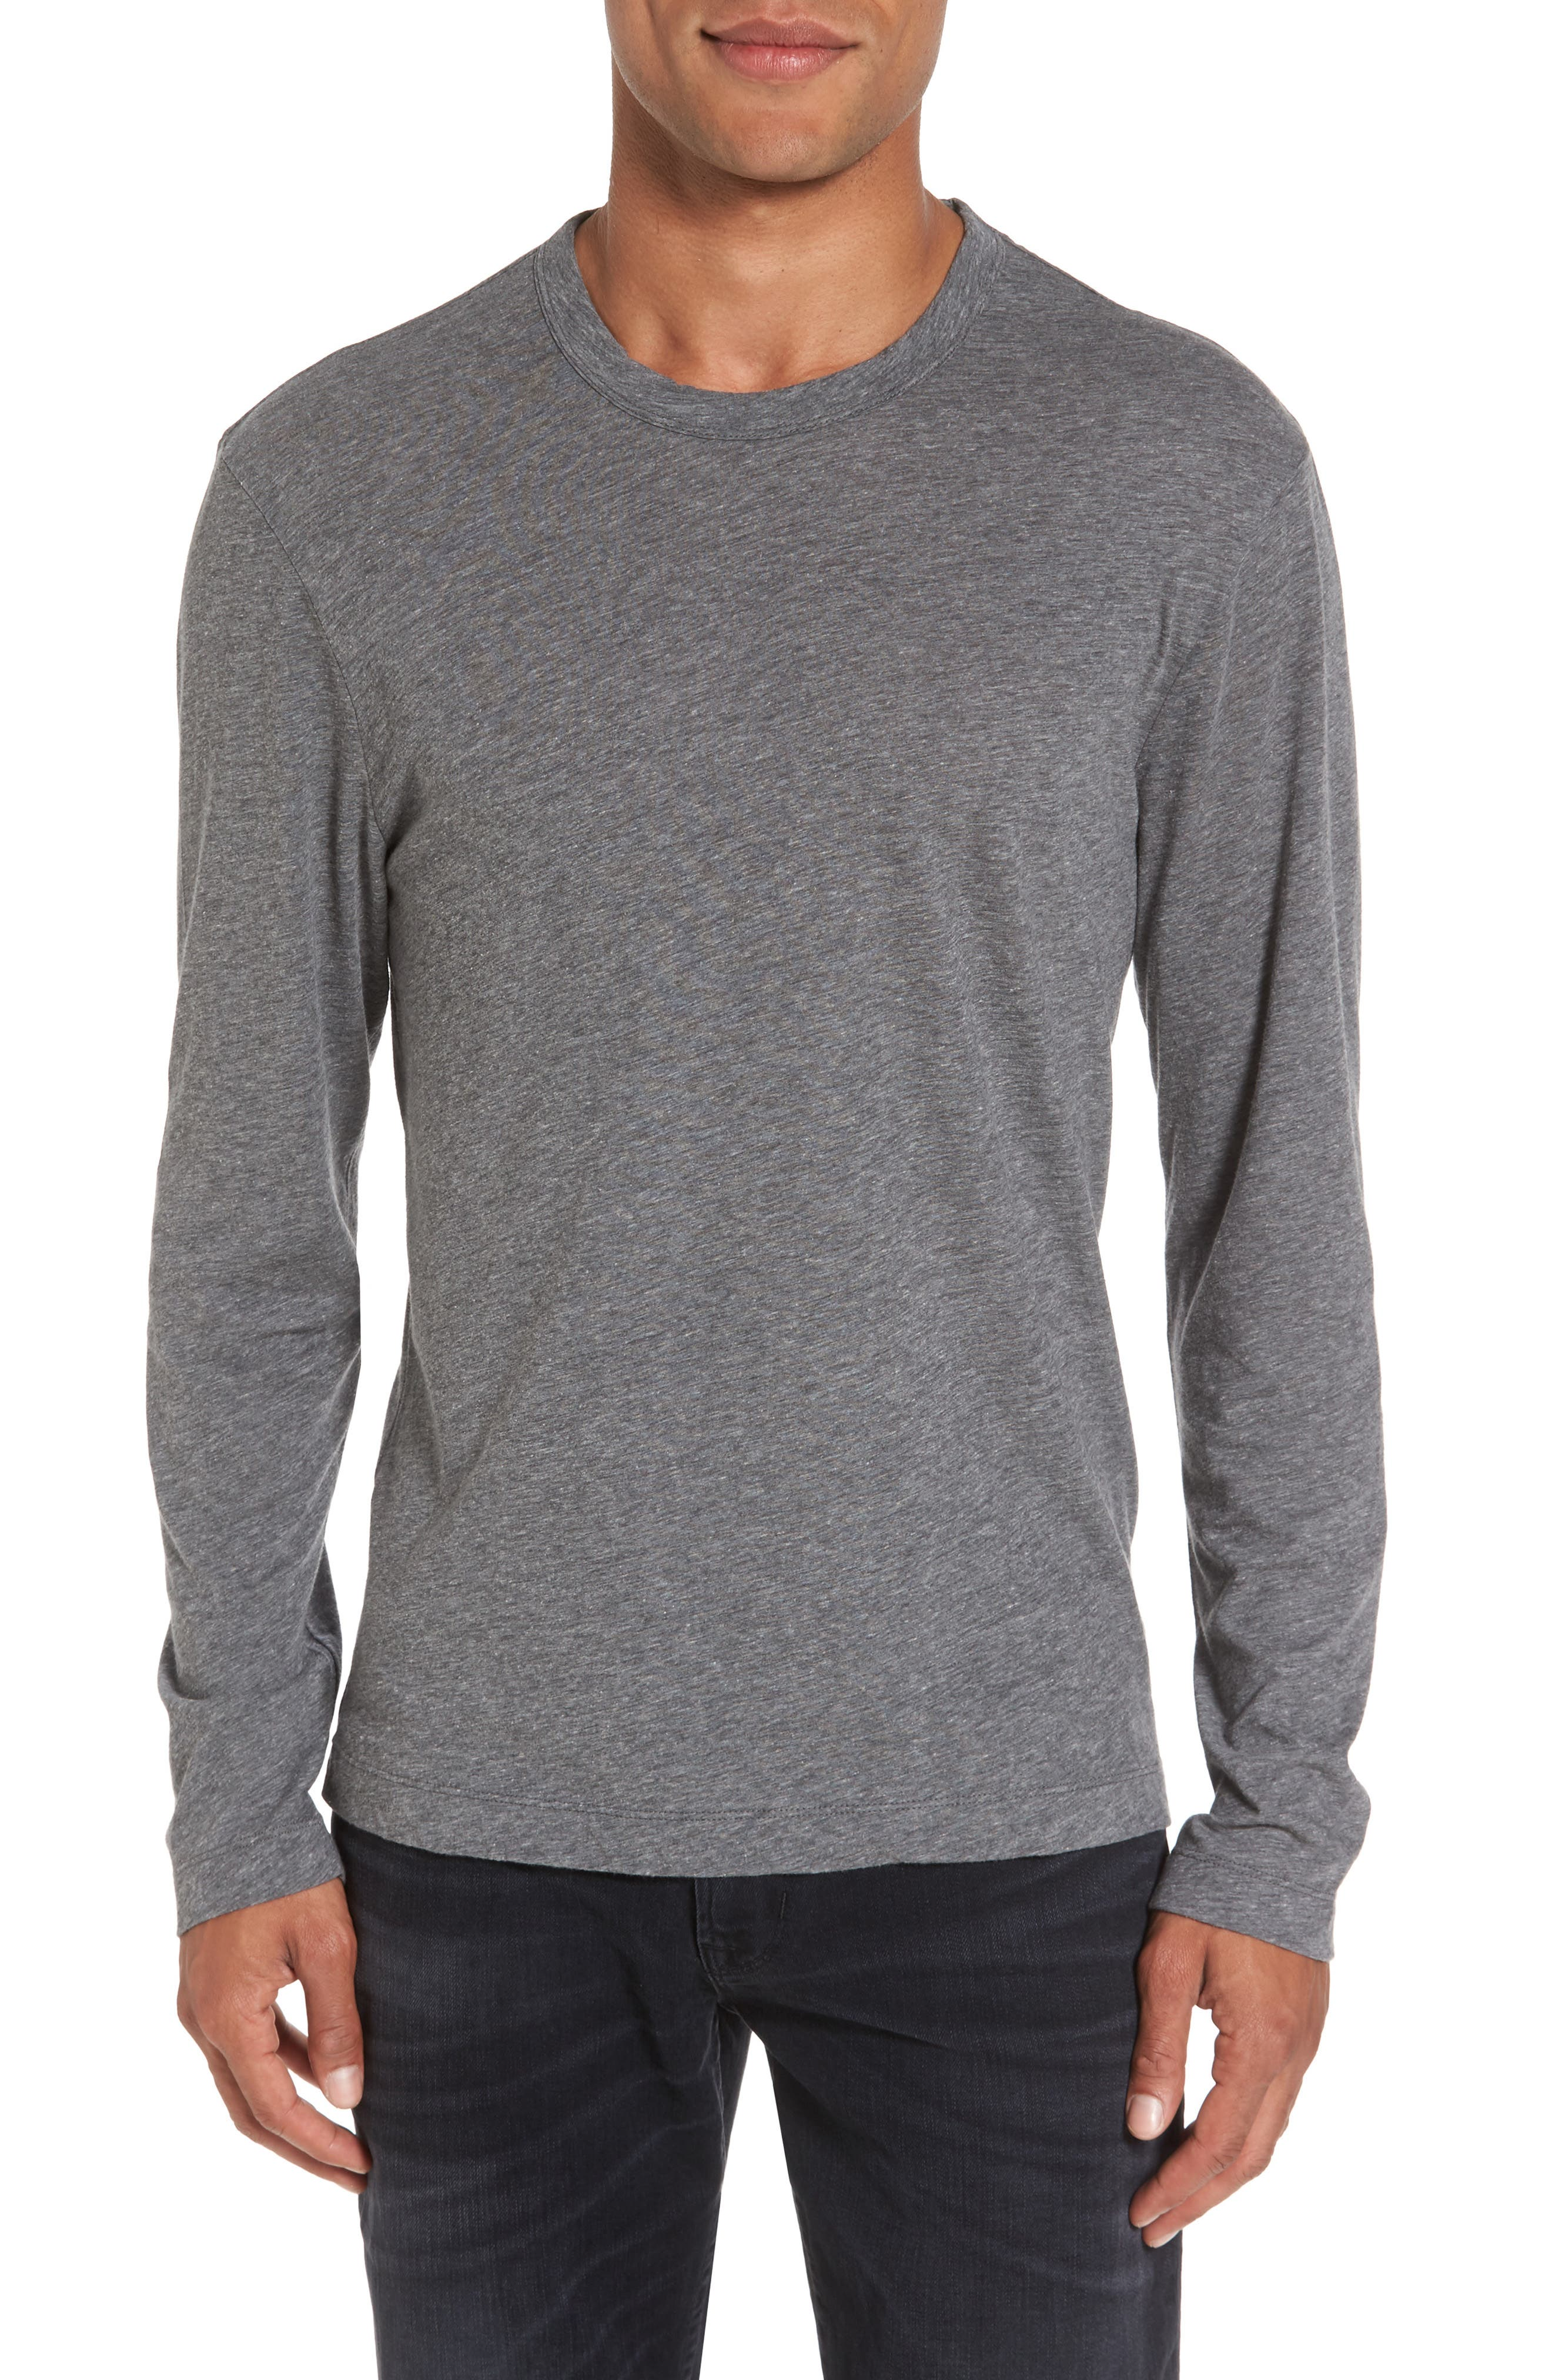 James Perse Mélange Knit Long Sleeve T-Shirt